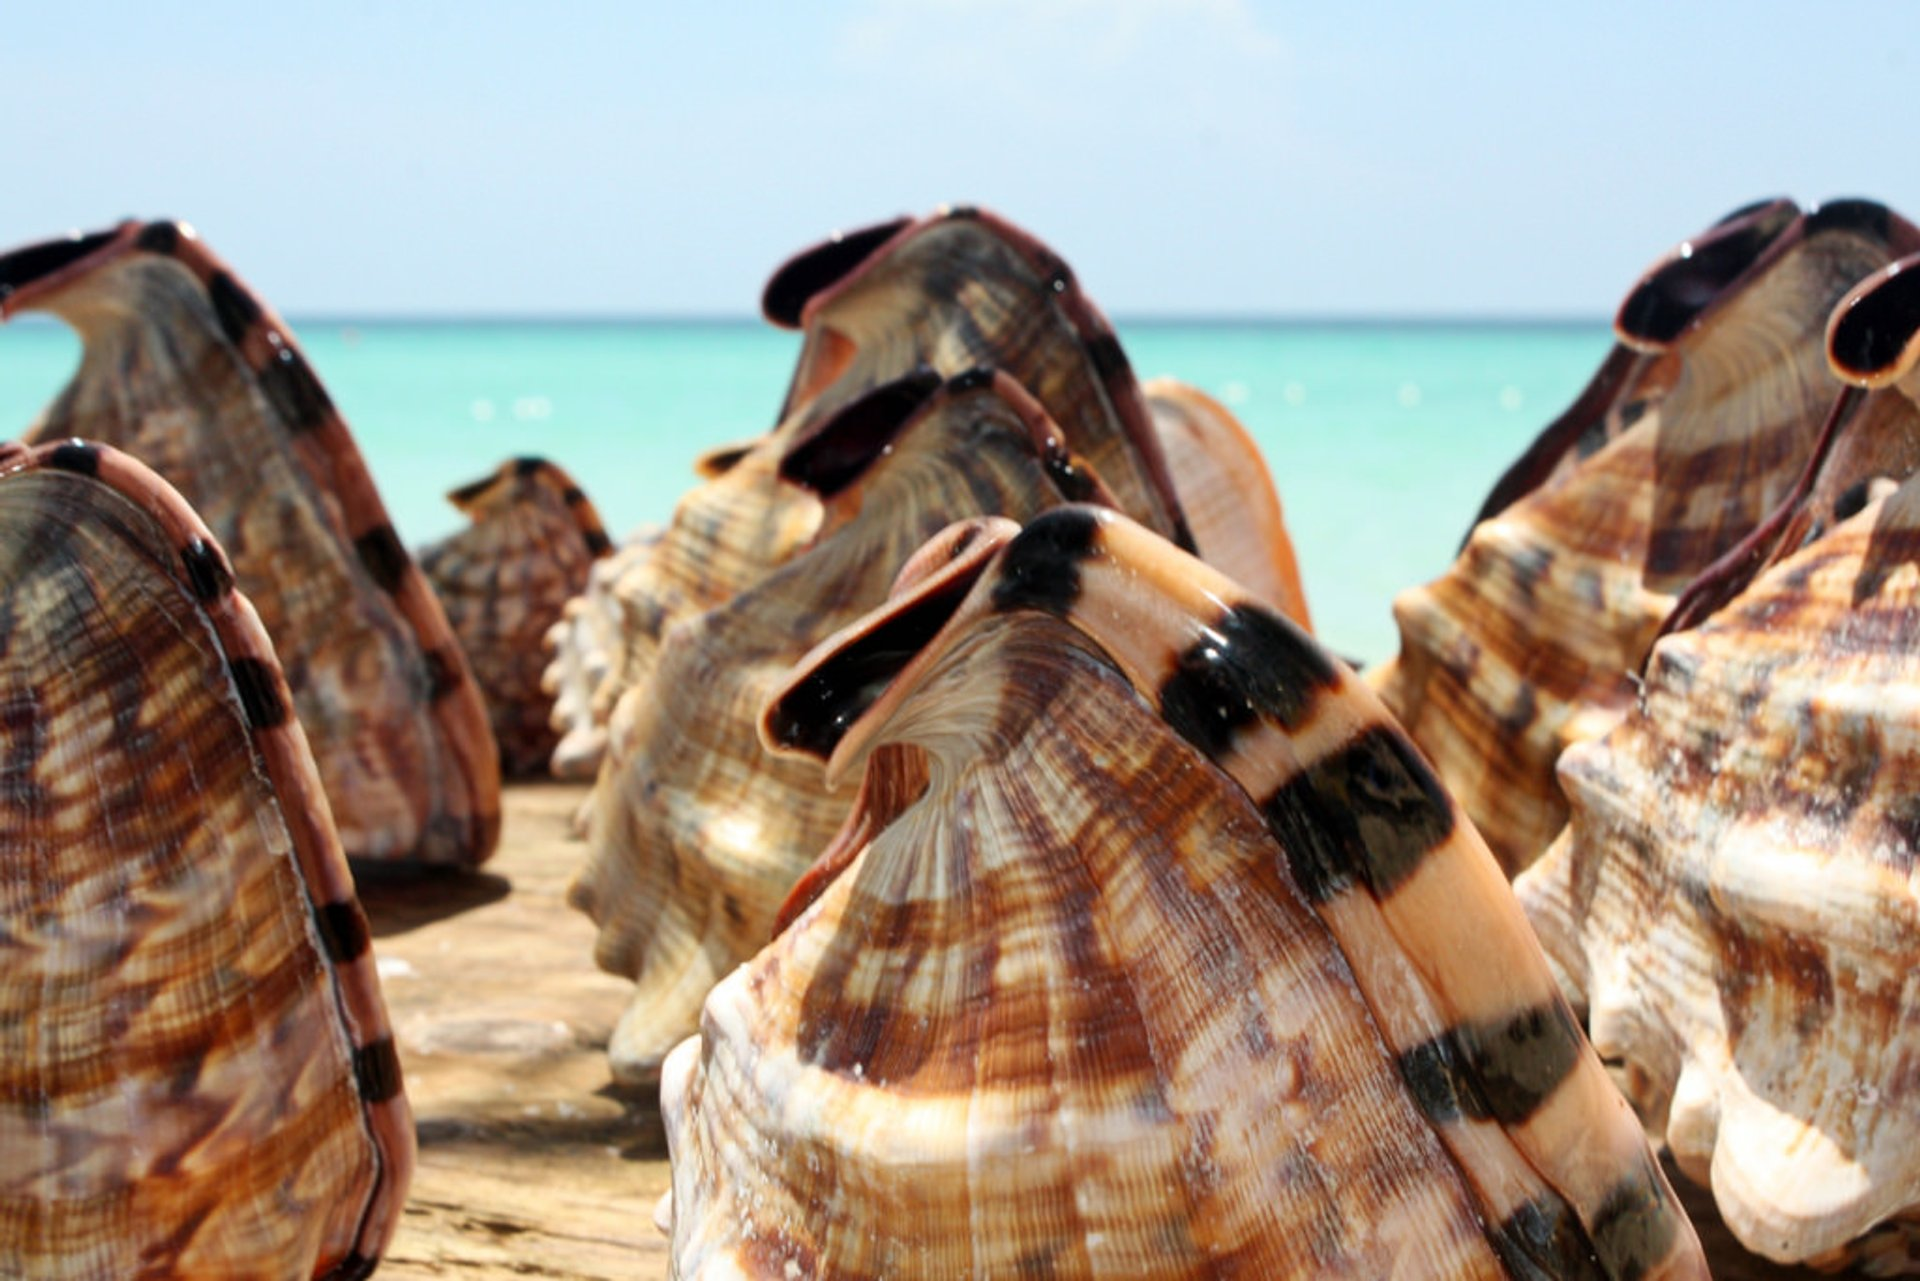 Queen Conch Season in Jamaica - Best Season 2020